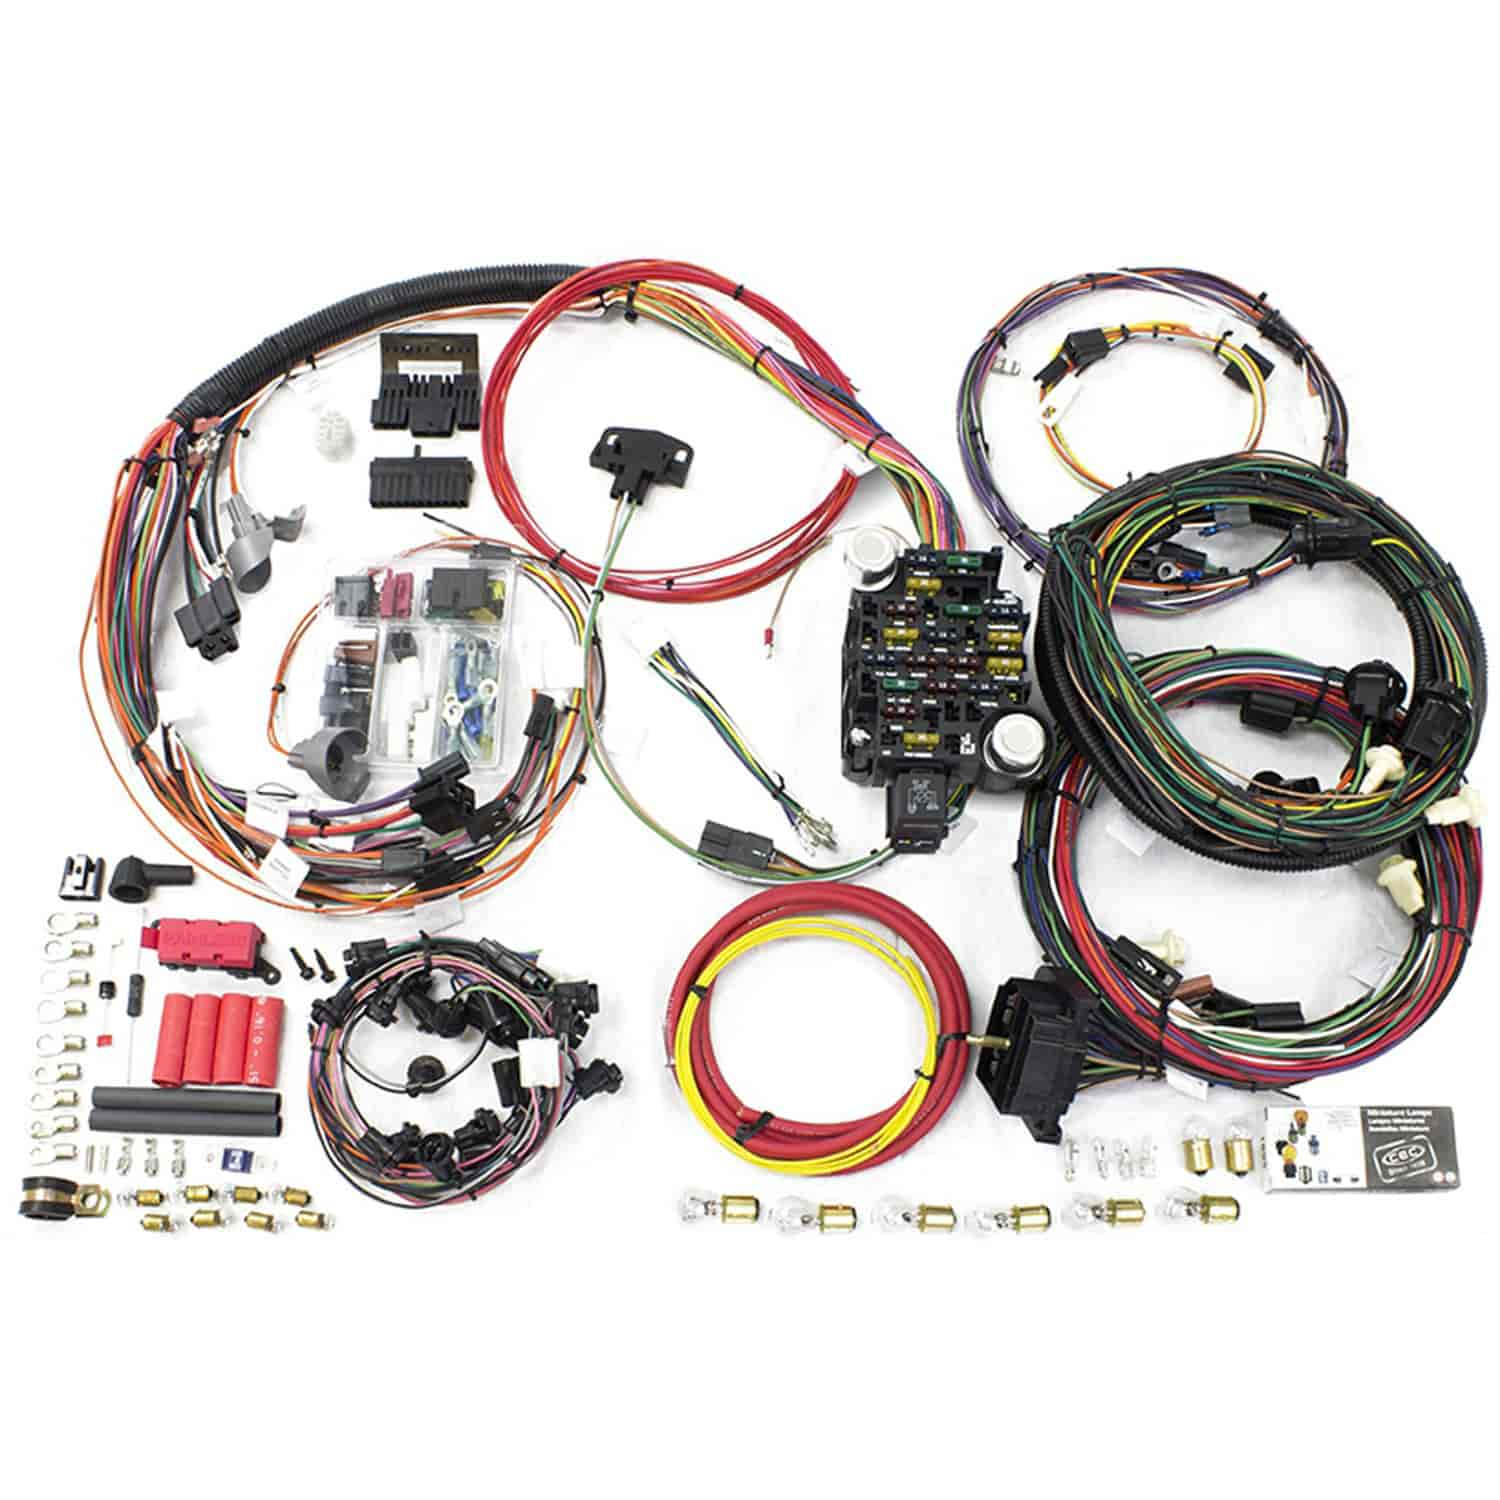 Painless Performance Products 20130 Direct Fit 26 Circuit Wiring Harness Product